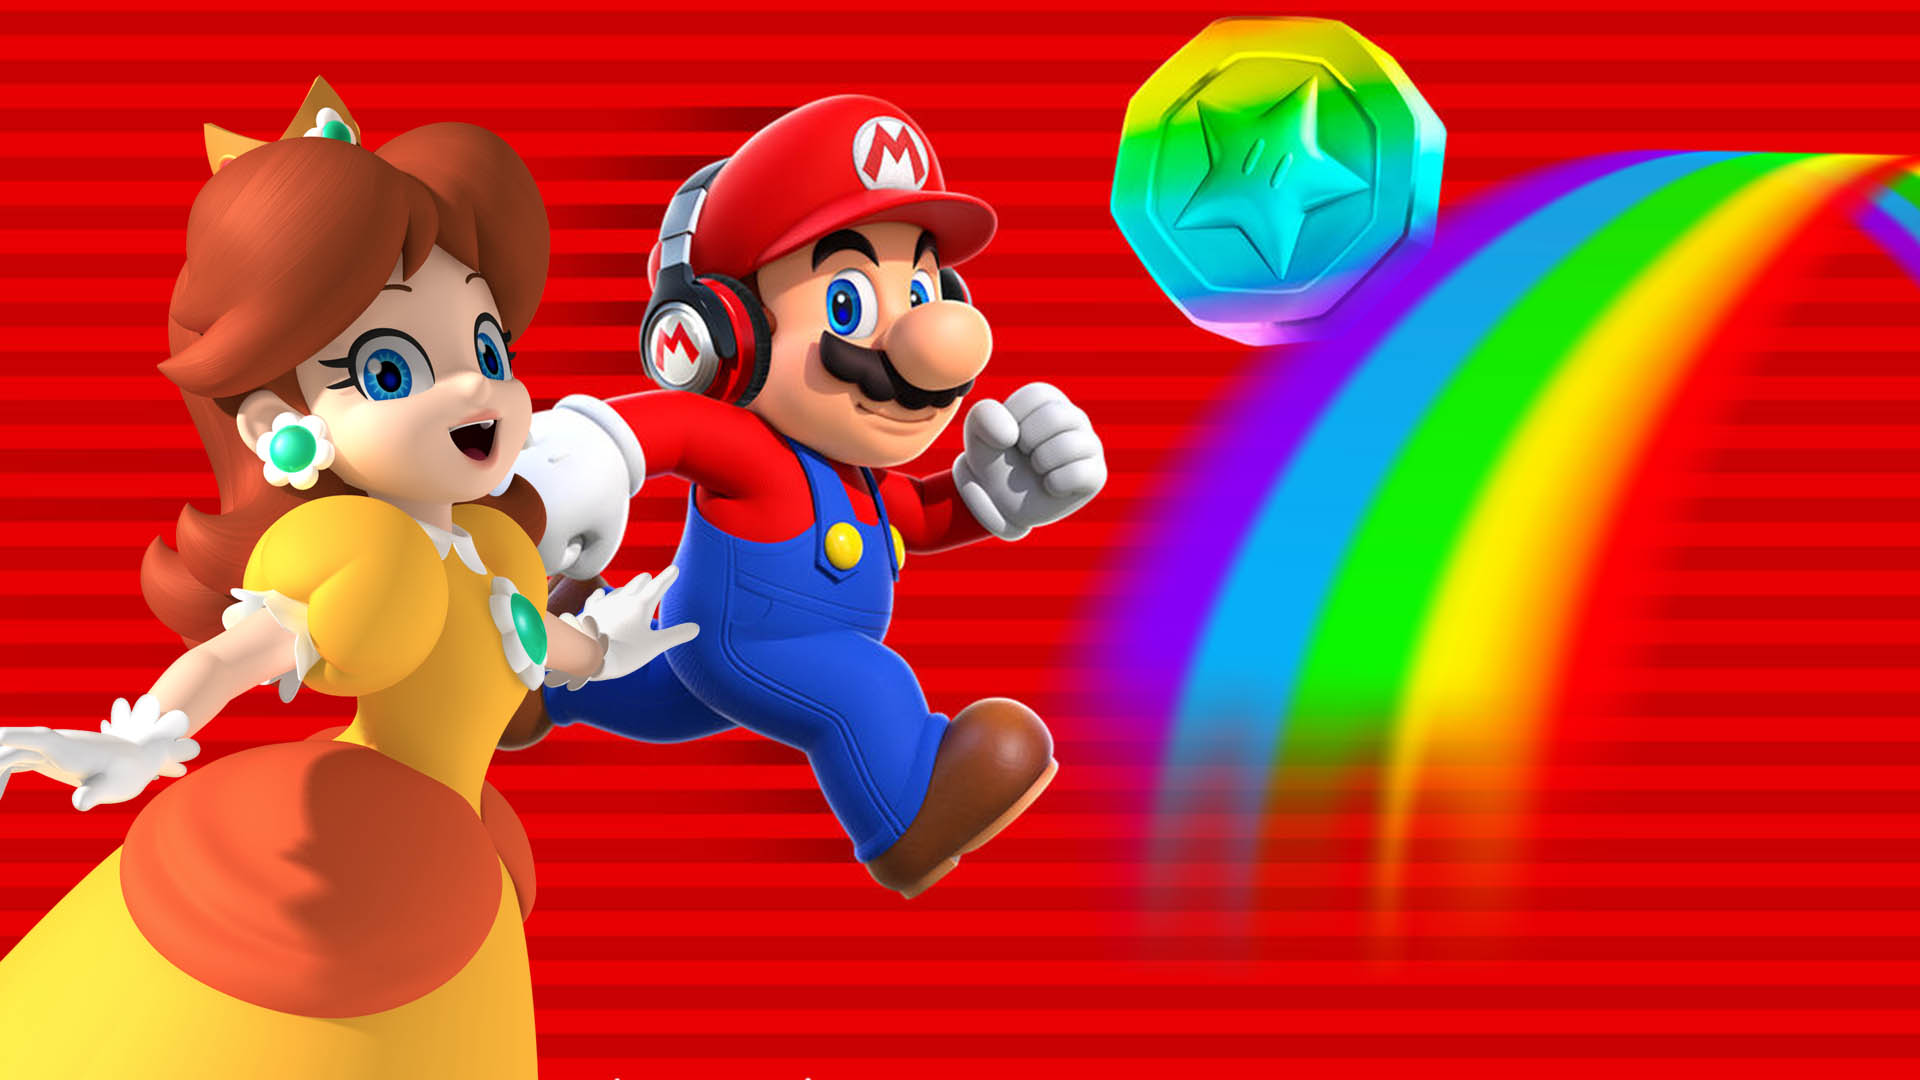 Nintendo is Looking For New Mobile Game Partners